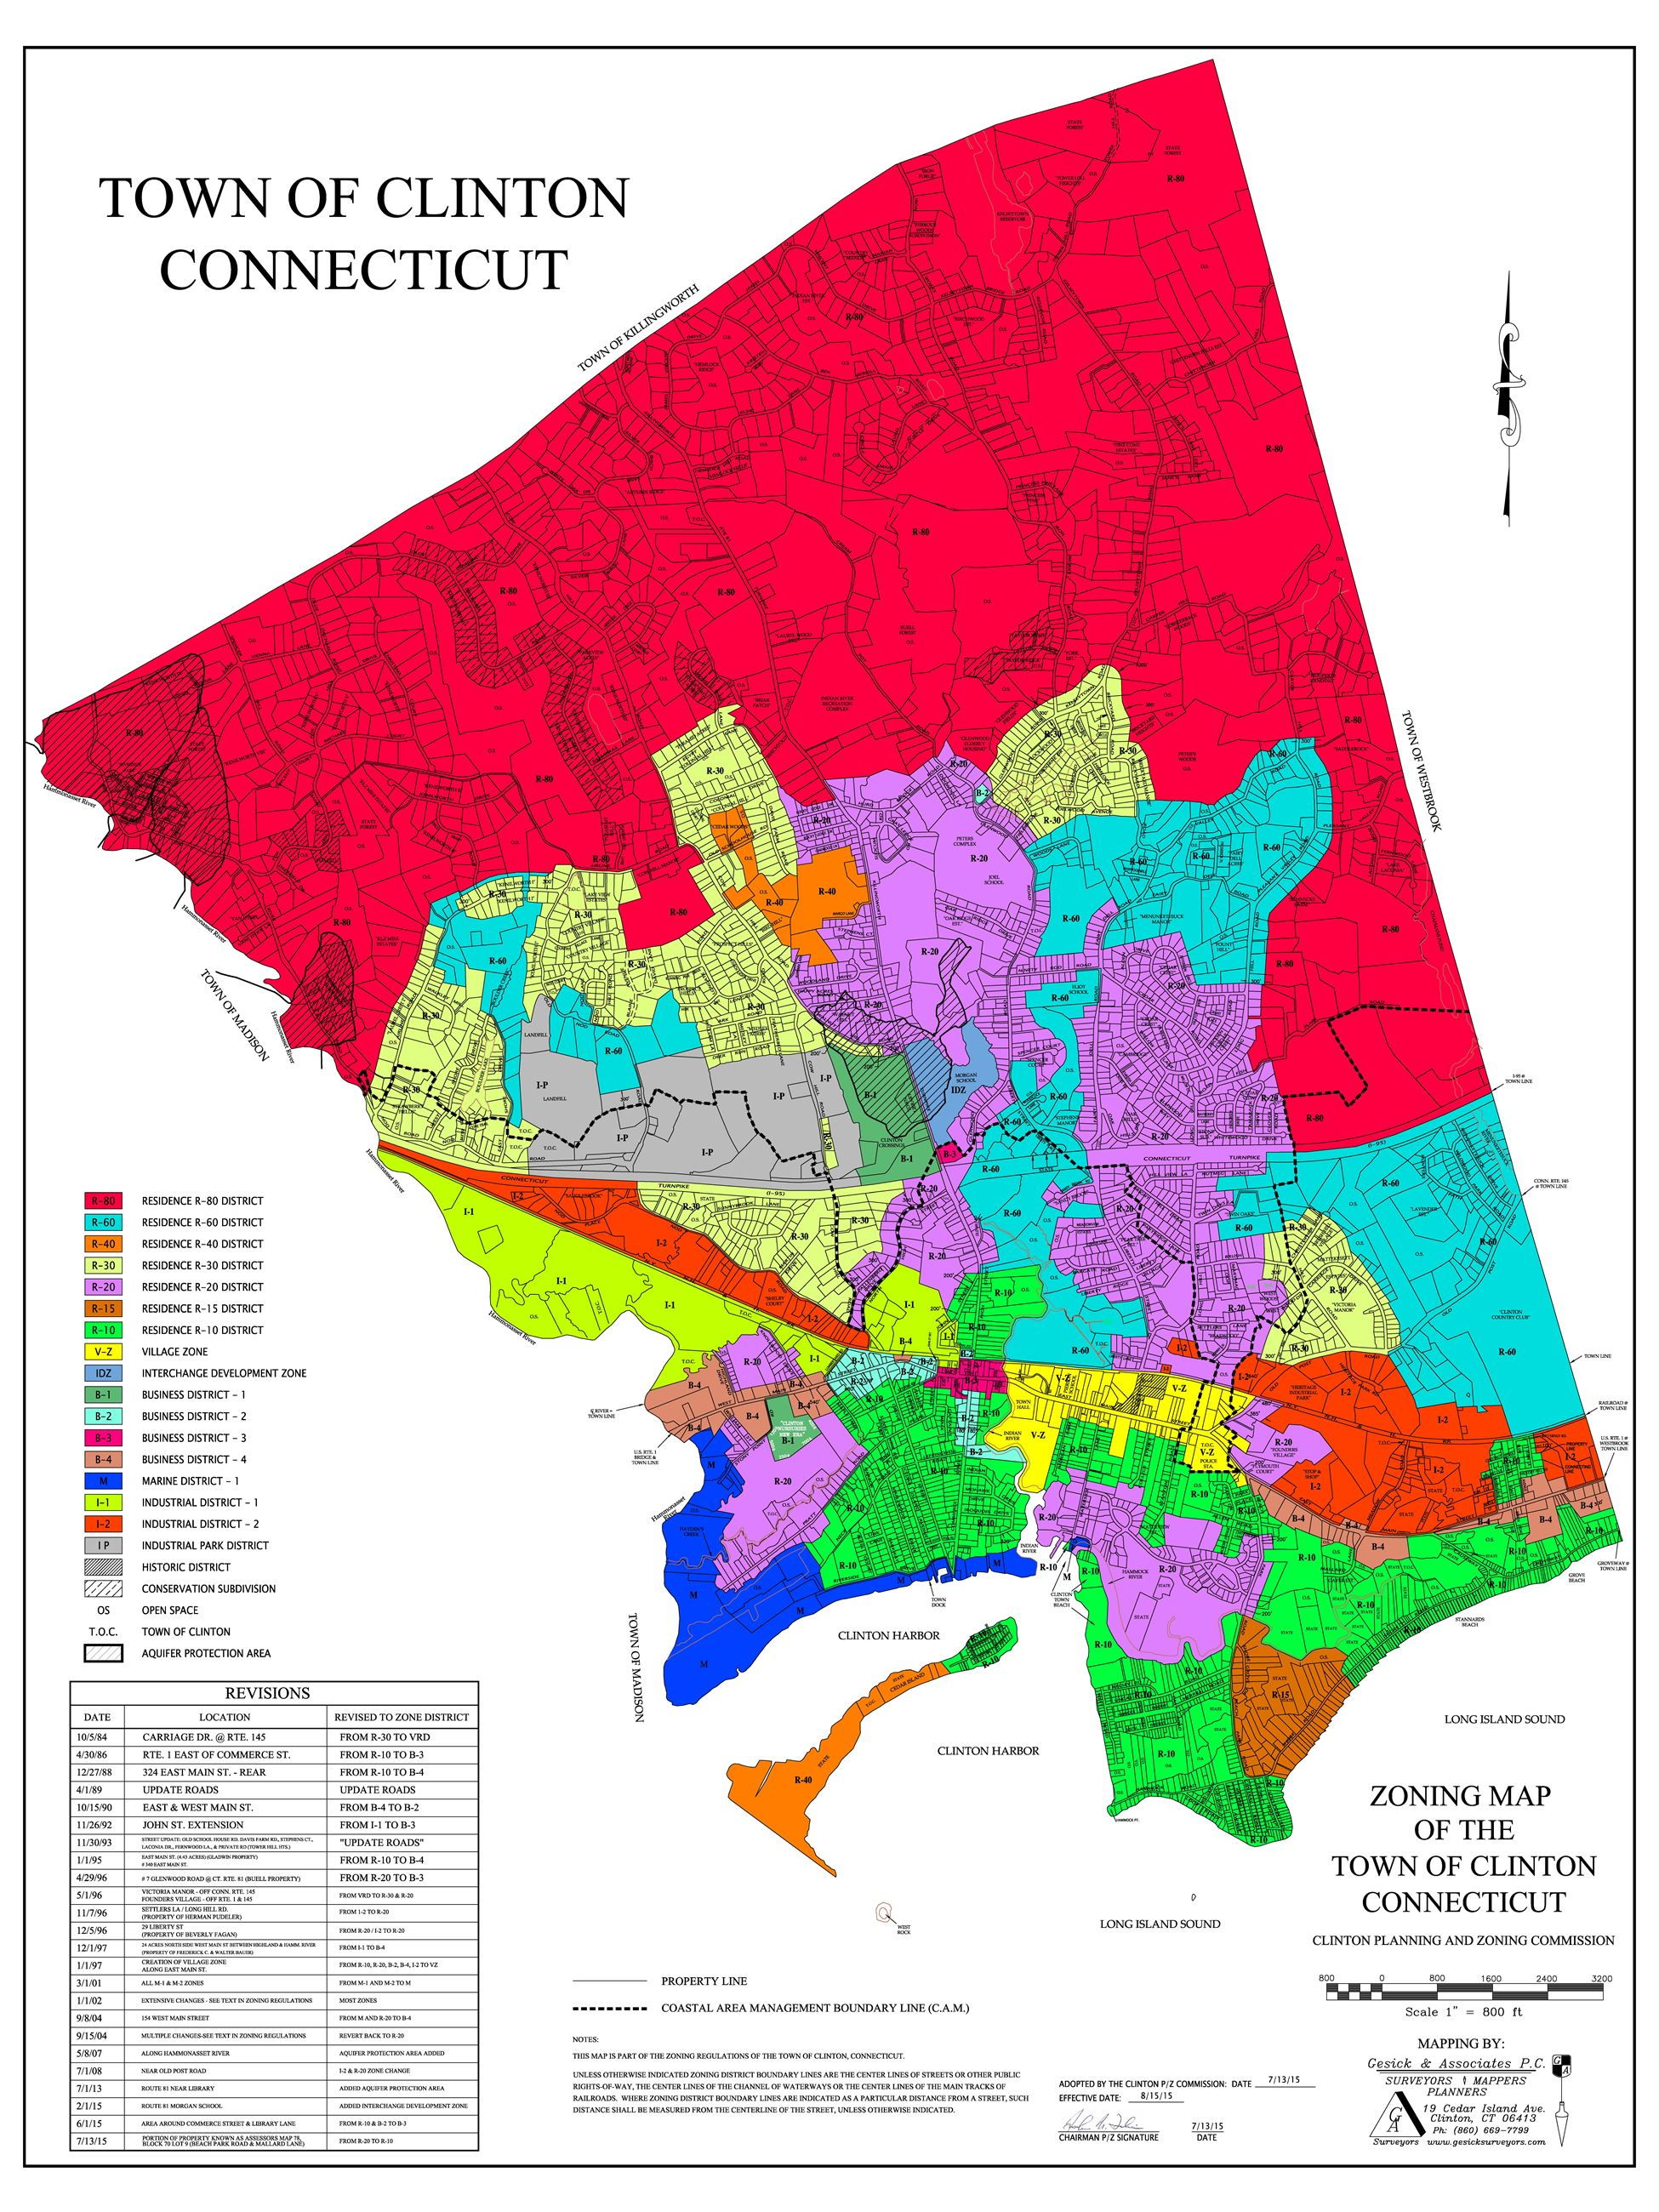 Zoning Map Updated Eff 8-15-15